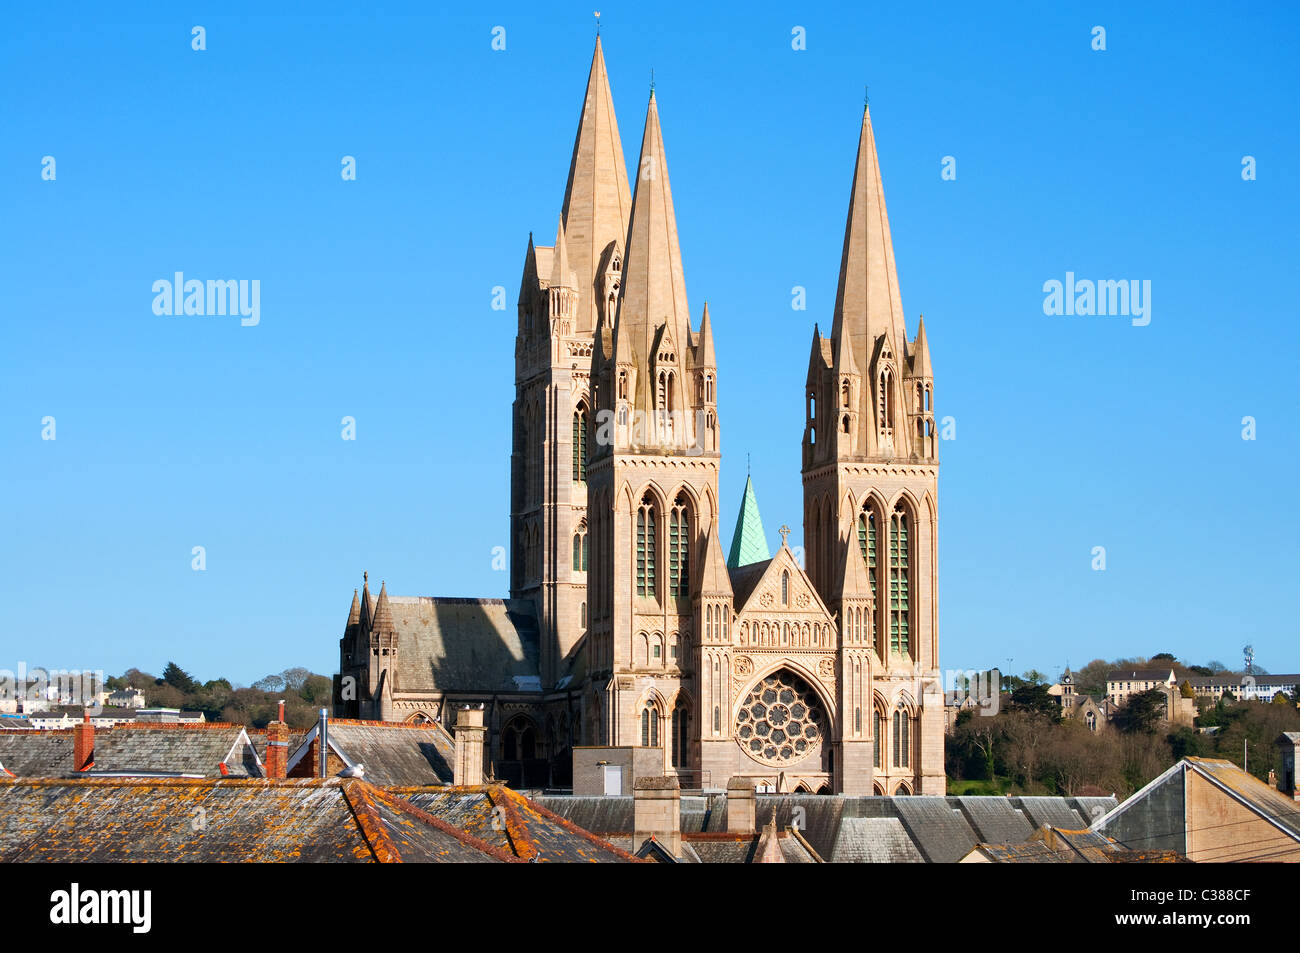 Truro Cathedral, Cornwall, UK - Stock Image